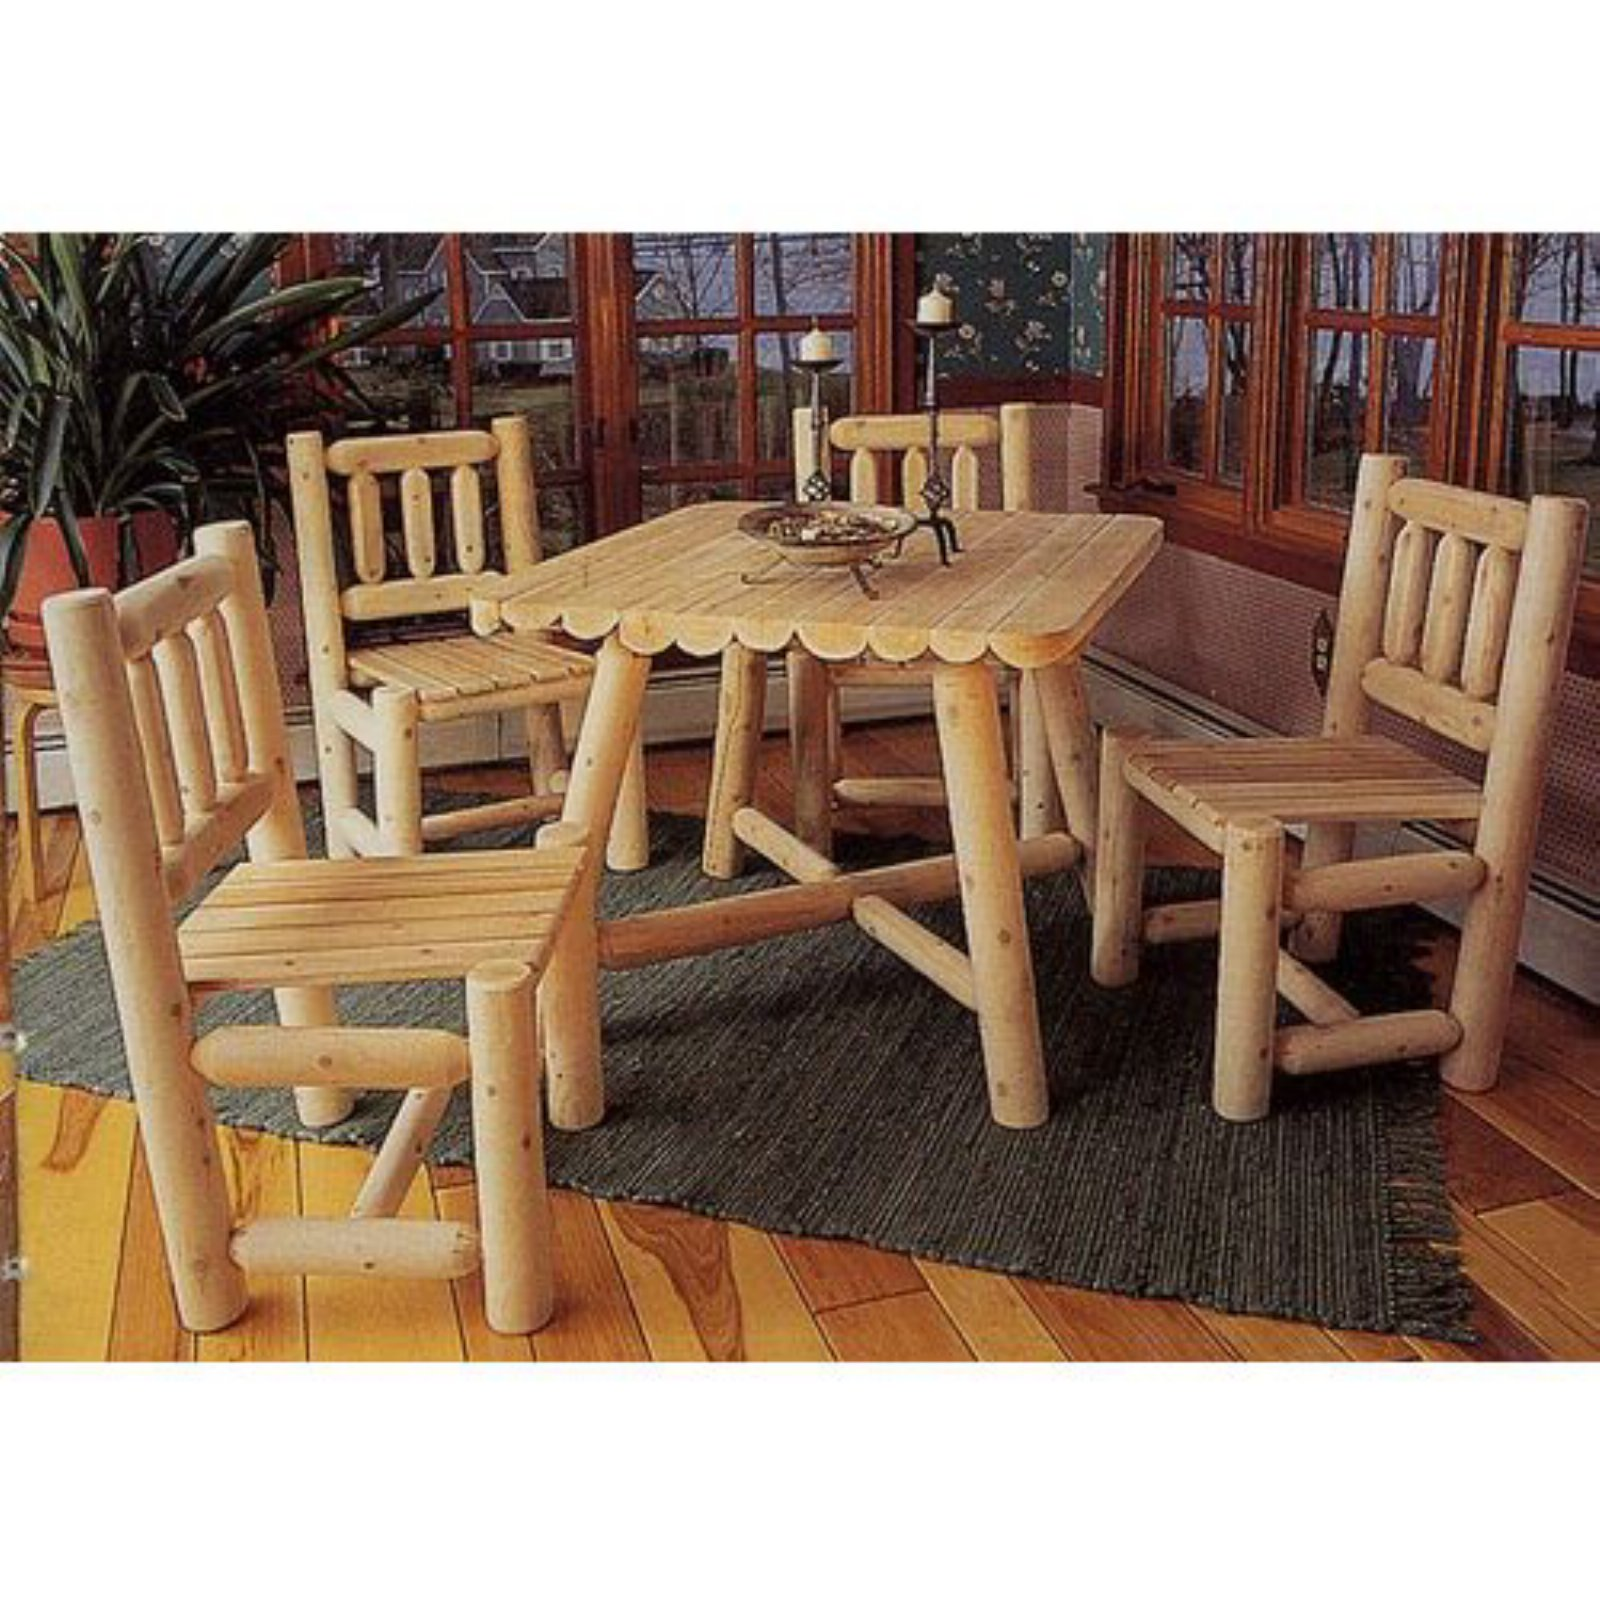 Rustic Natural Cedar Furniture Old Country 5 Piece Square Patio Dining Room Set by Rustic Warehouse Inc